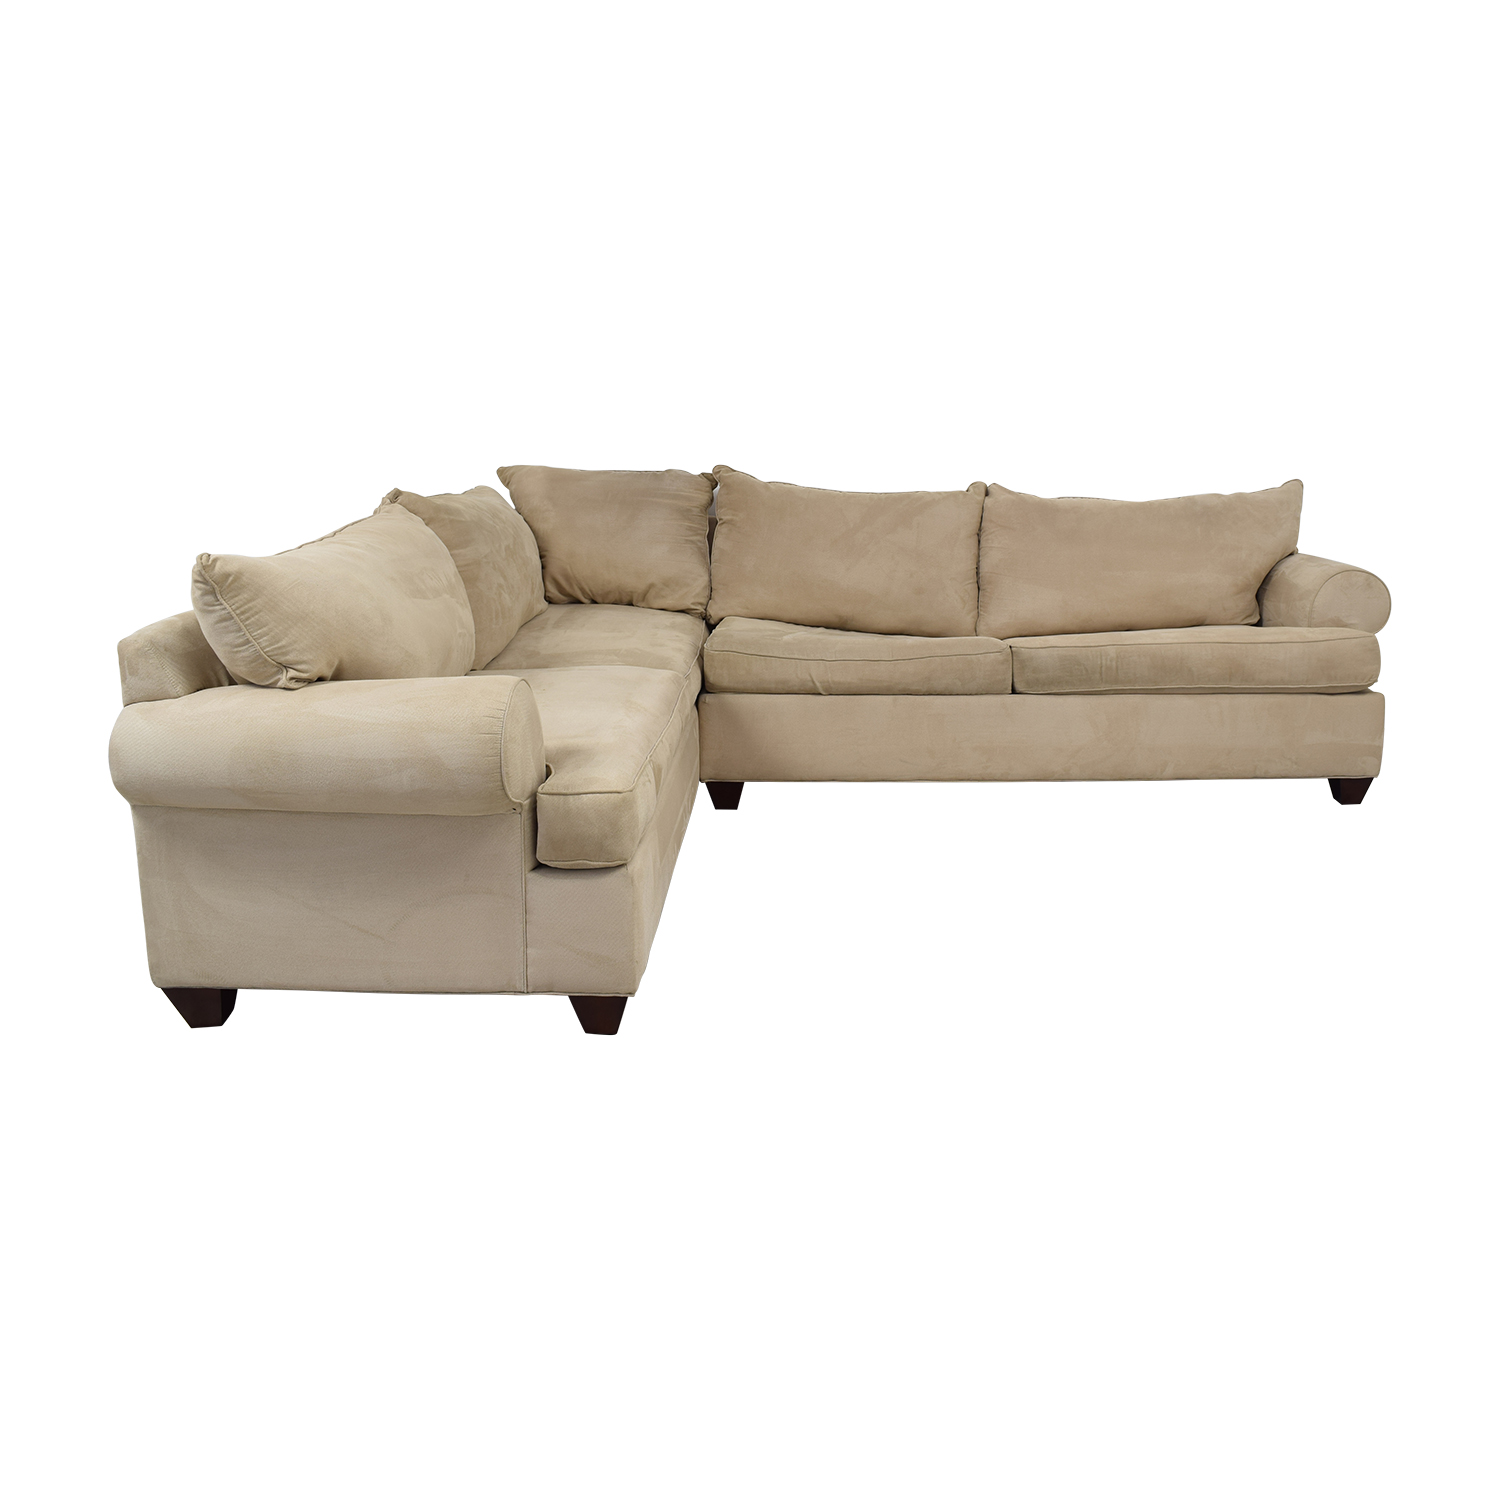 Raymour & Flanigan Raymour & Flanigan Queen Sleeper Sectional price